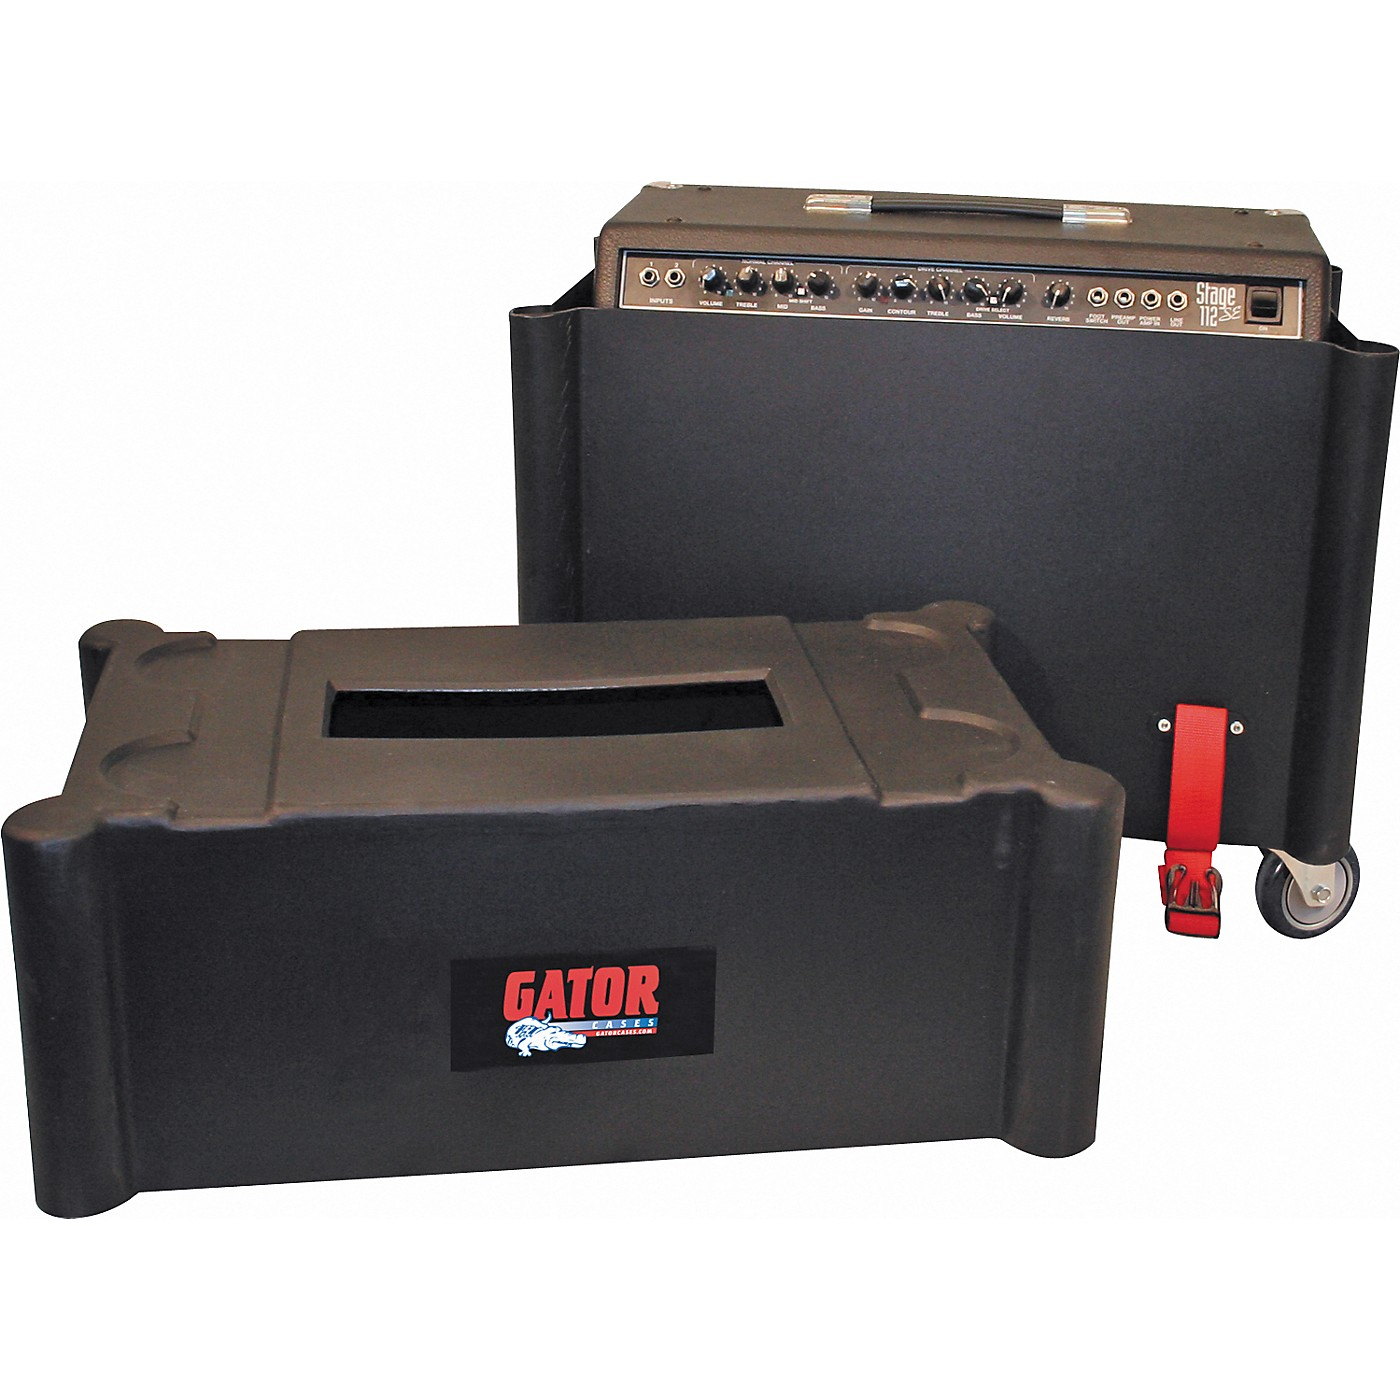 Gator Roto Mold Amp Case for 1x12 Amps thumbnail